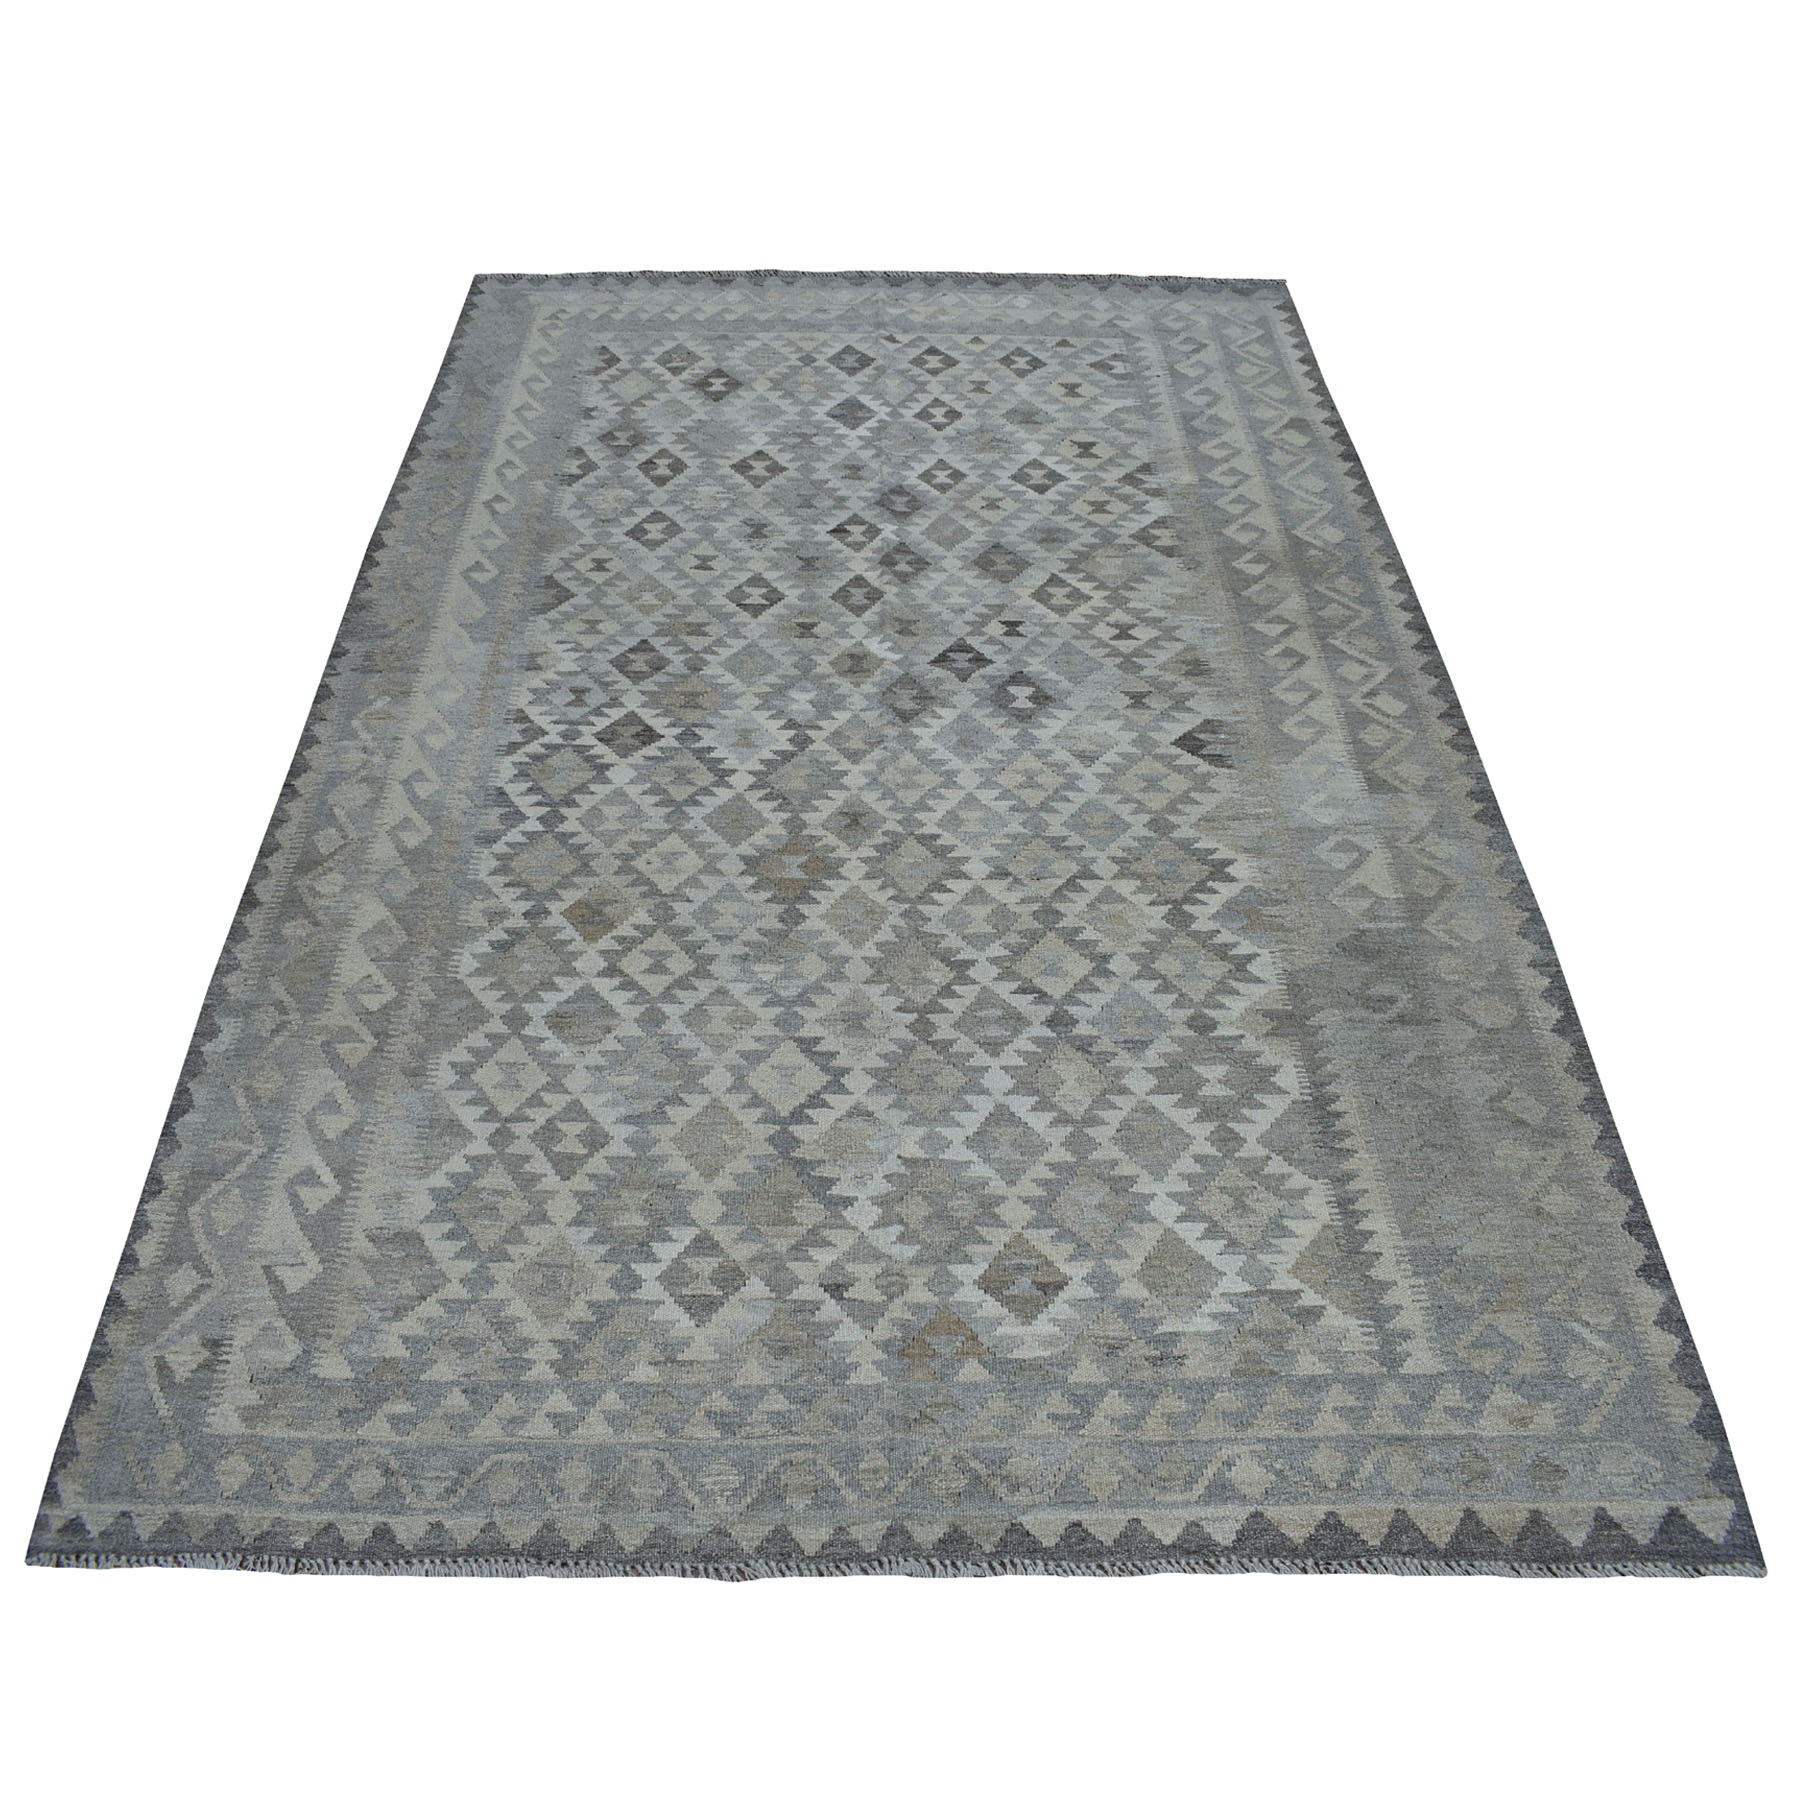 """5'9""""X8'1"""" Undyed Natural Wool Afghan Kilim Reversible Hand Woven Oriental Rug moaec0b7"""